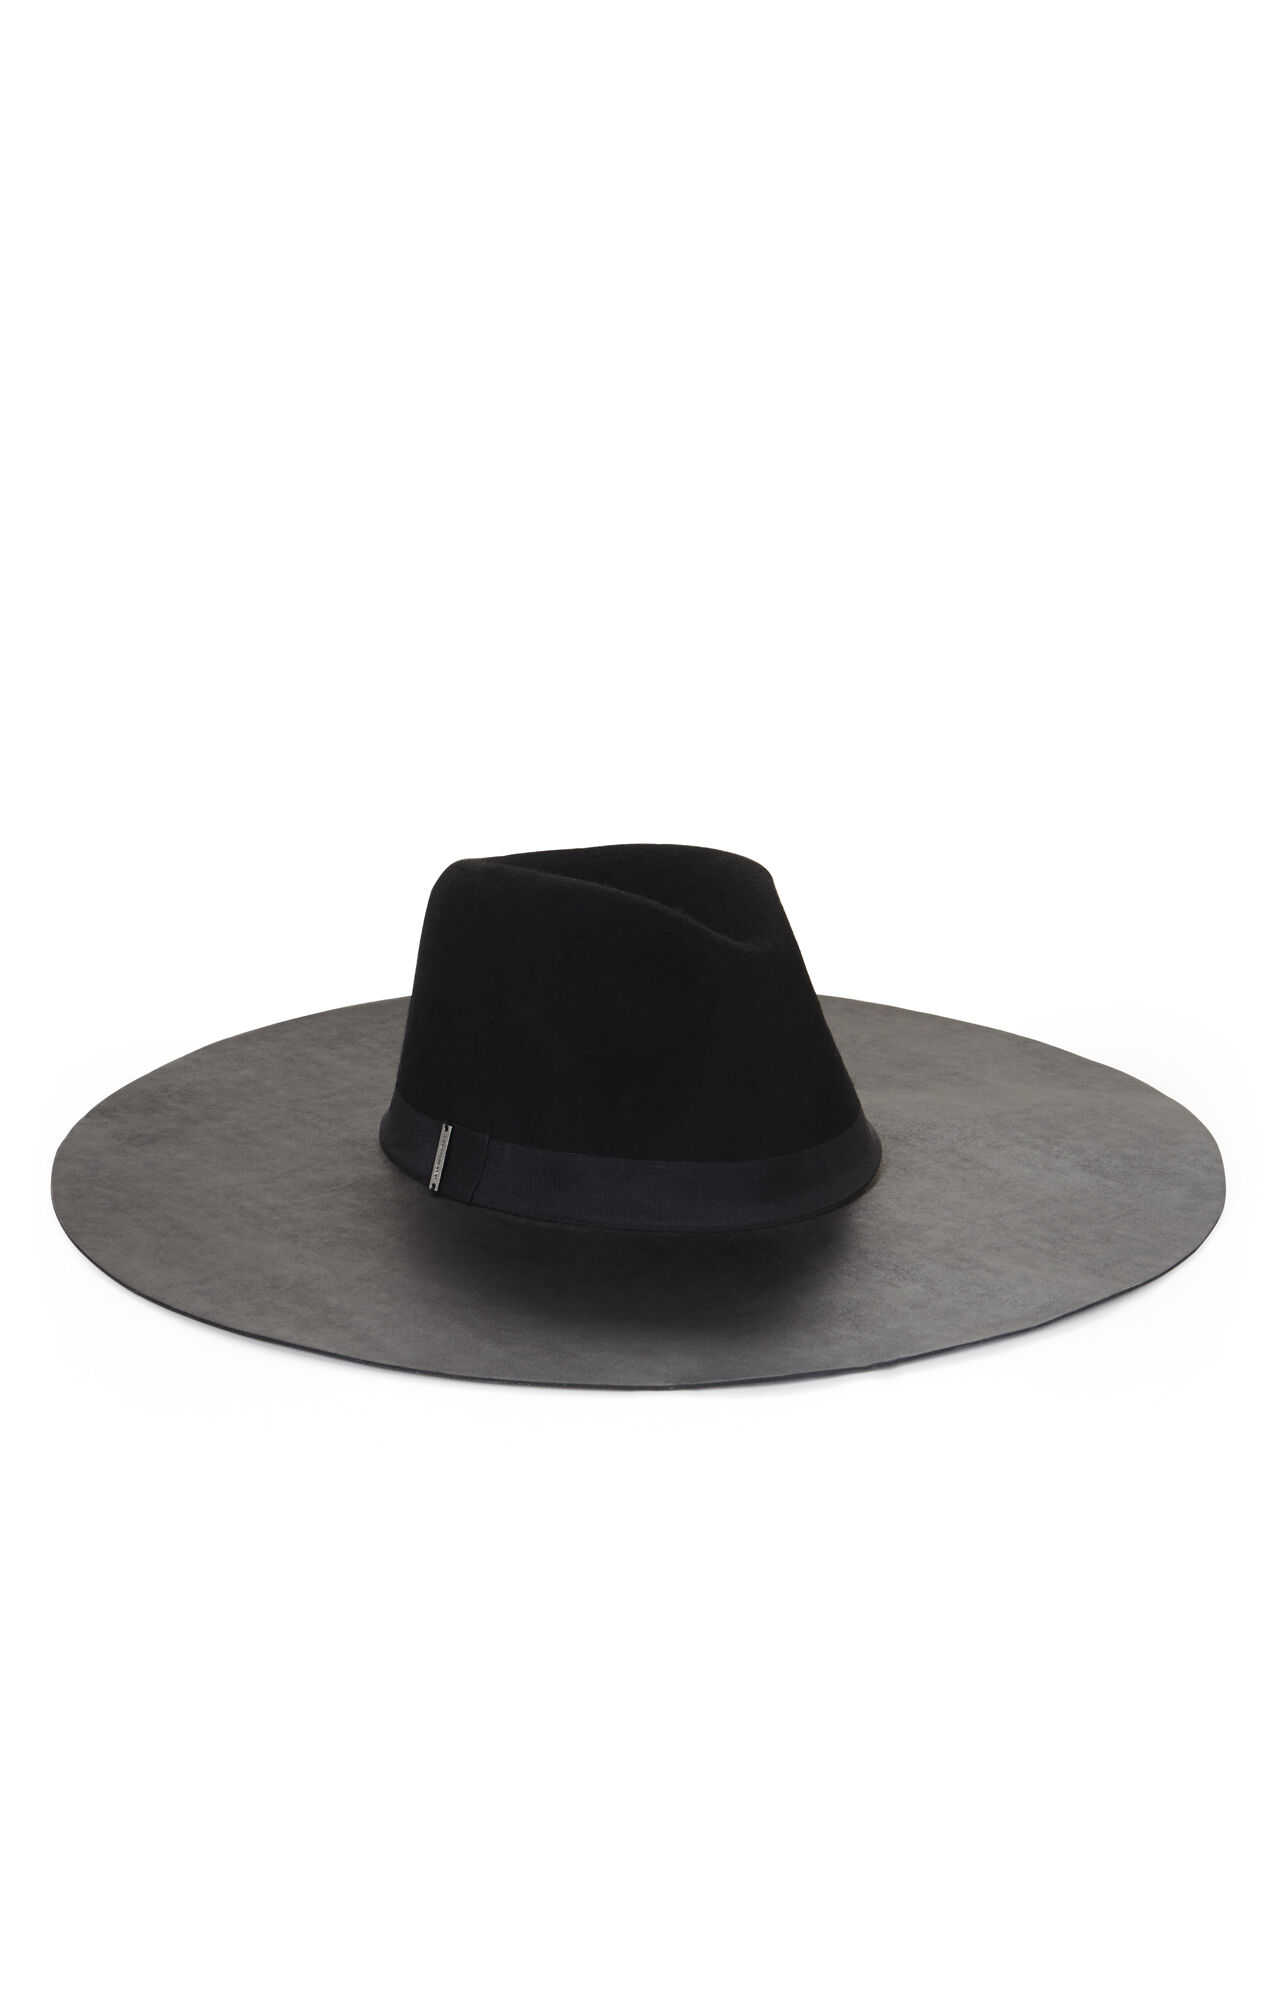 Faux-Leather and Felt Floppy Hat